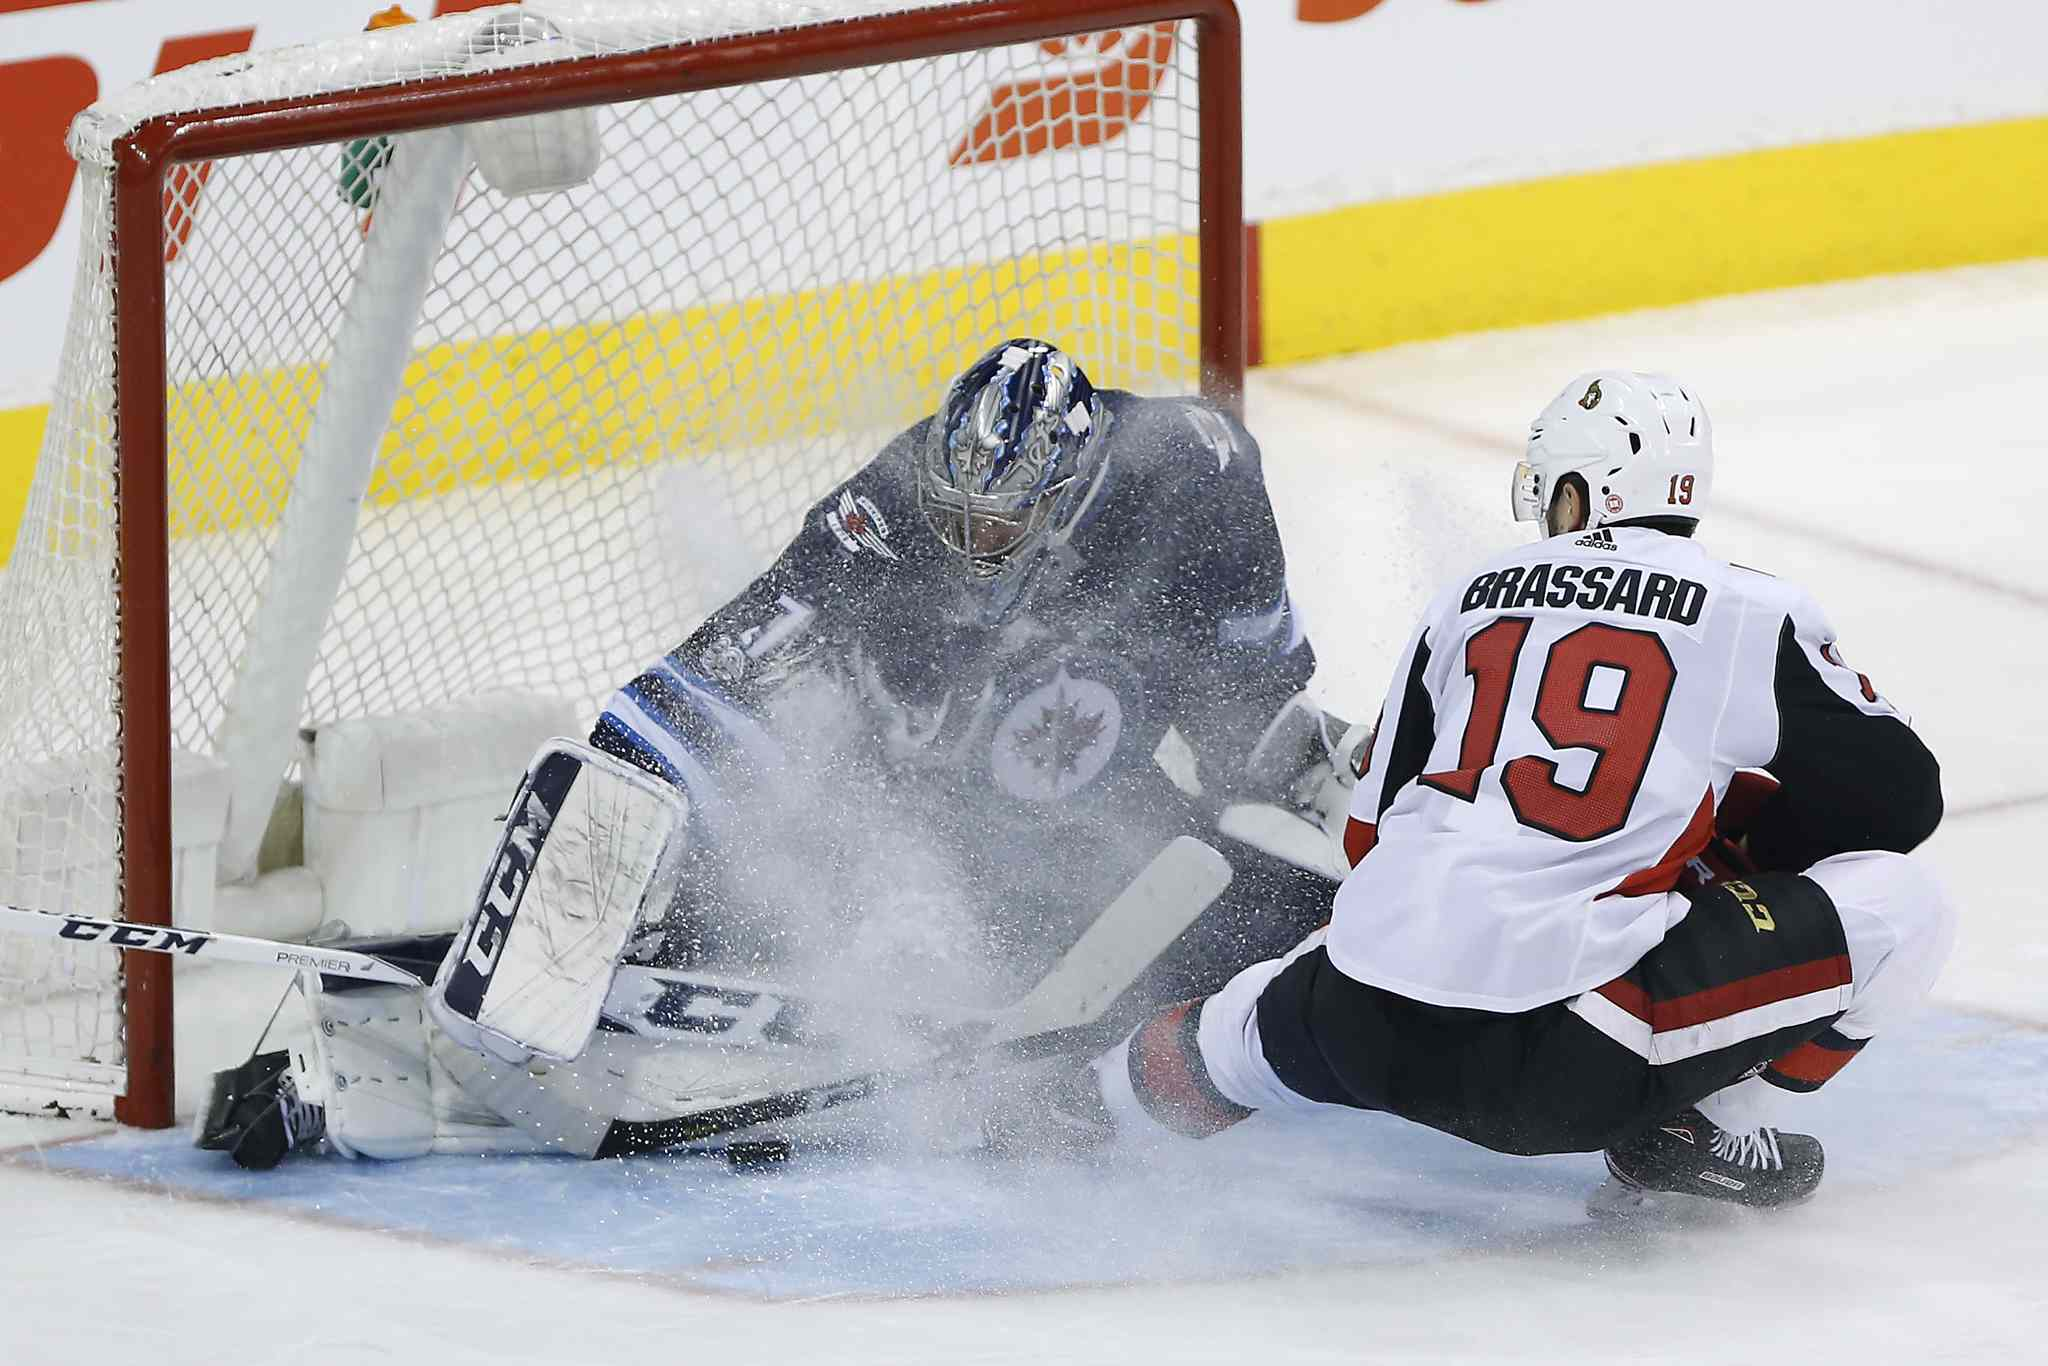 JOHN WOODS / WINNIPEG FREE PRESS</p><p>Winnipeg Jets goaltender Connor Hellebuyck (37) stops the breakaway attempt by Ottawa Senators' Derick Brassard (19) during third period NHL action.</p>